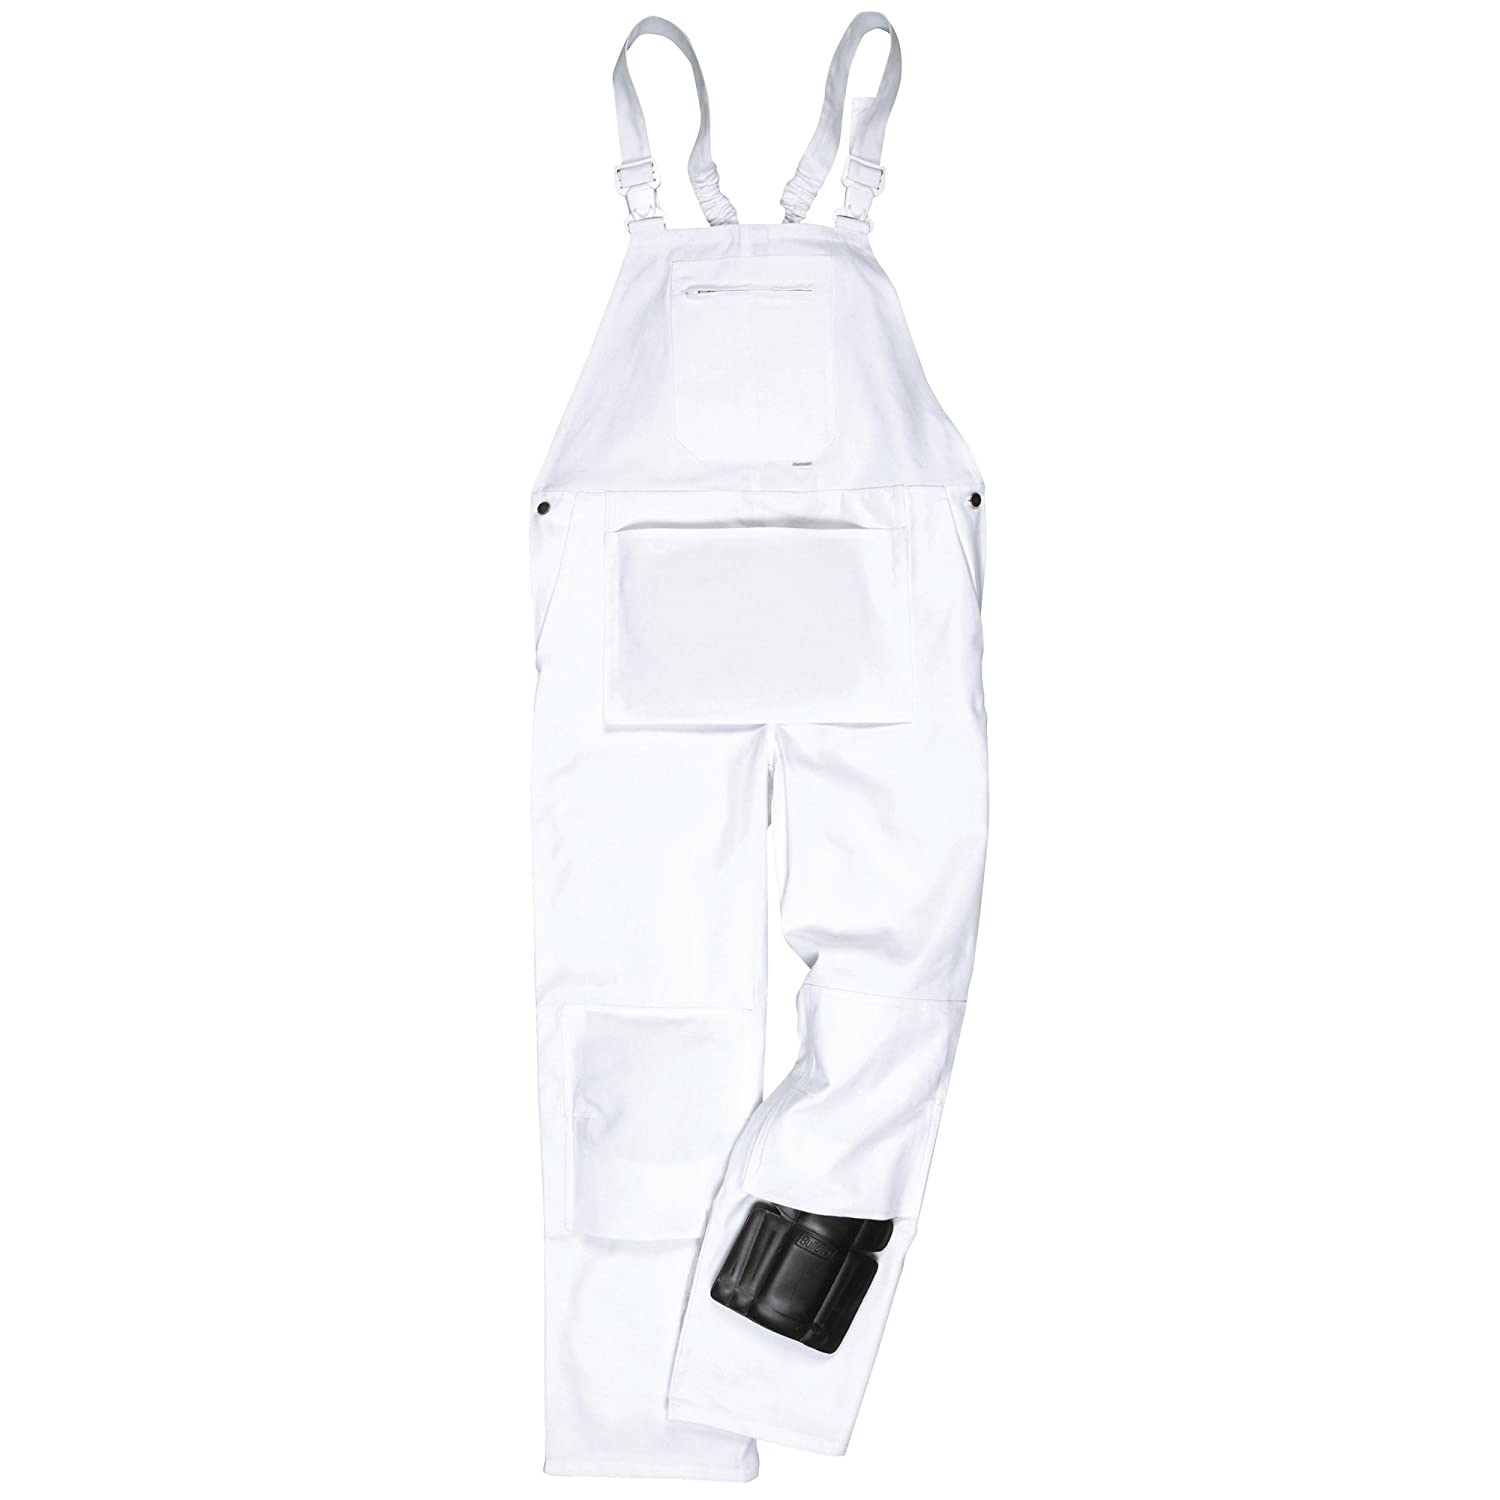 Portwest Unisex Painters Bib & Brace/Workwear (M x Regular) (White) UTRW975_1